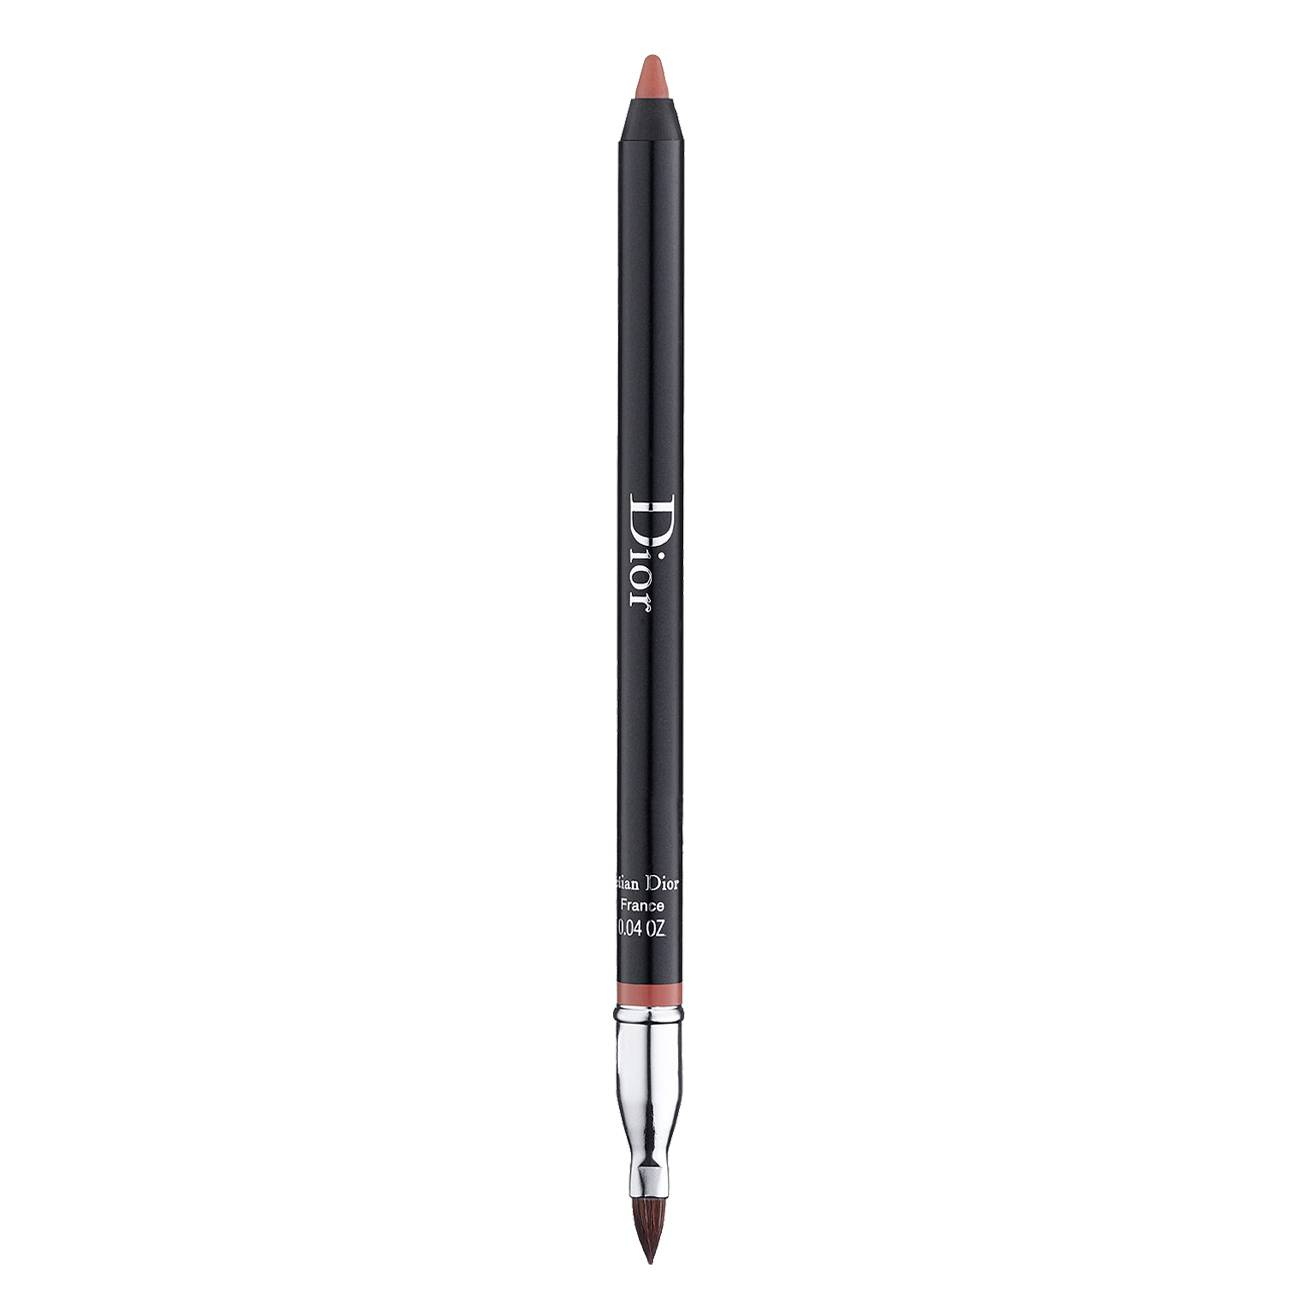 Dior Contour 169 1.2 Grame Dior imagine 2021 bestvalue.eu